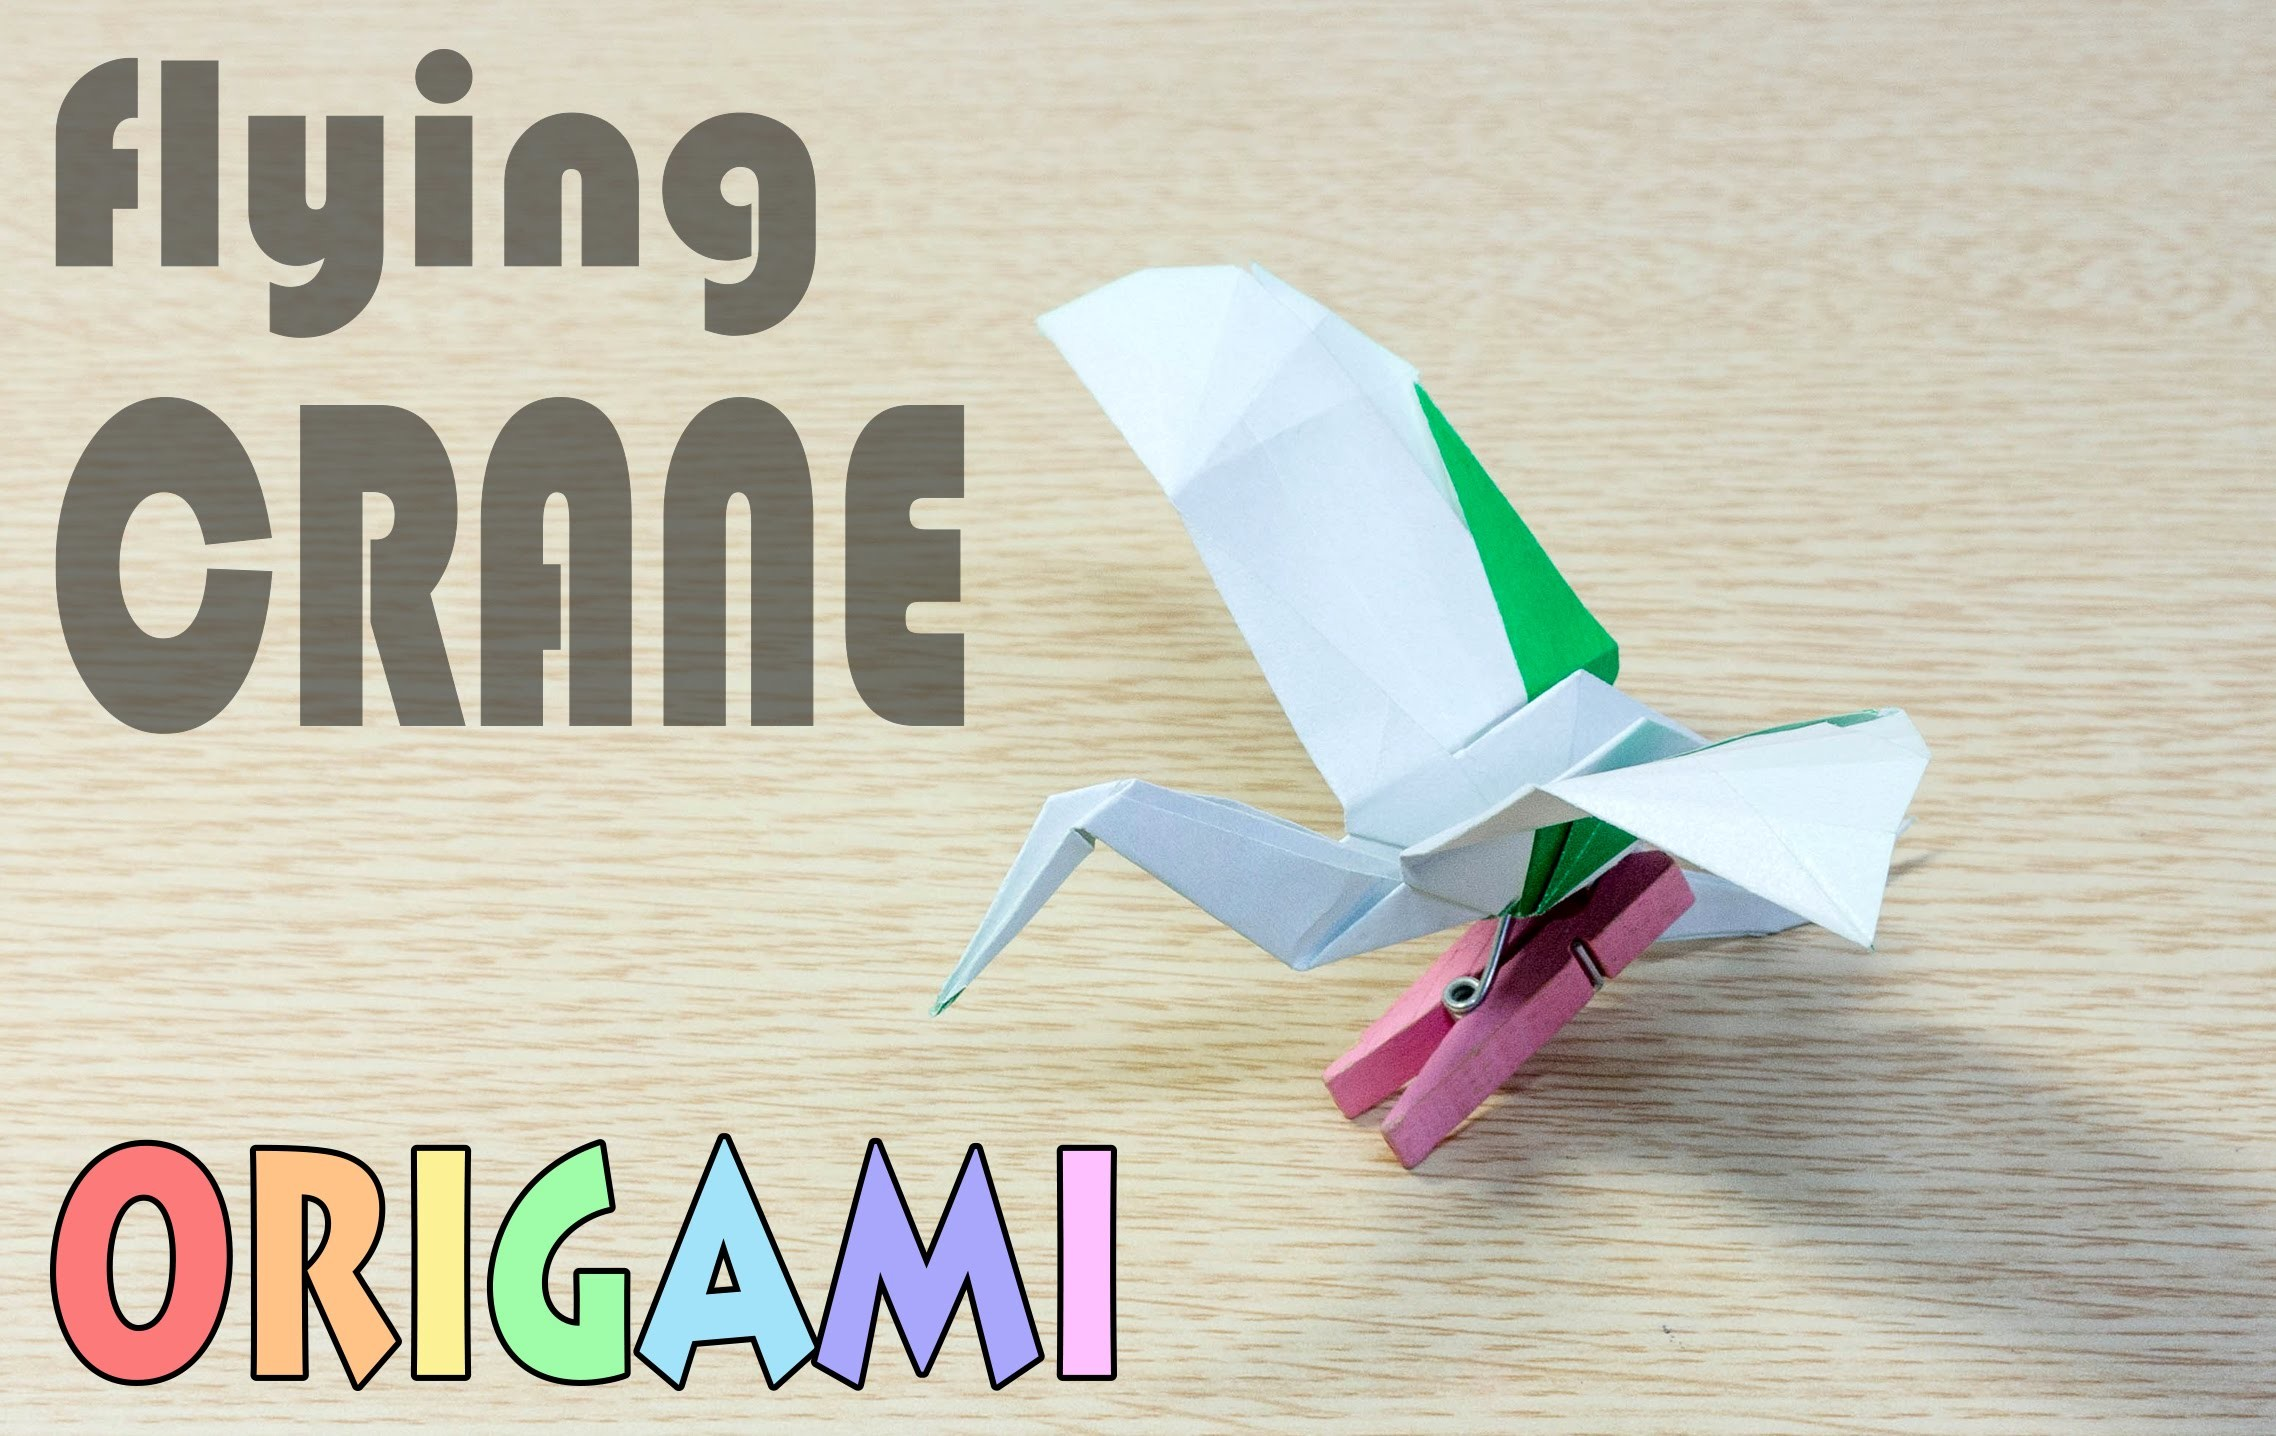 Origami Flying Crane - 4 : Paper Bird Airplane Tutorial